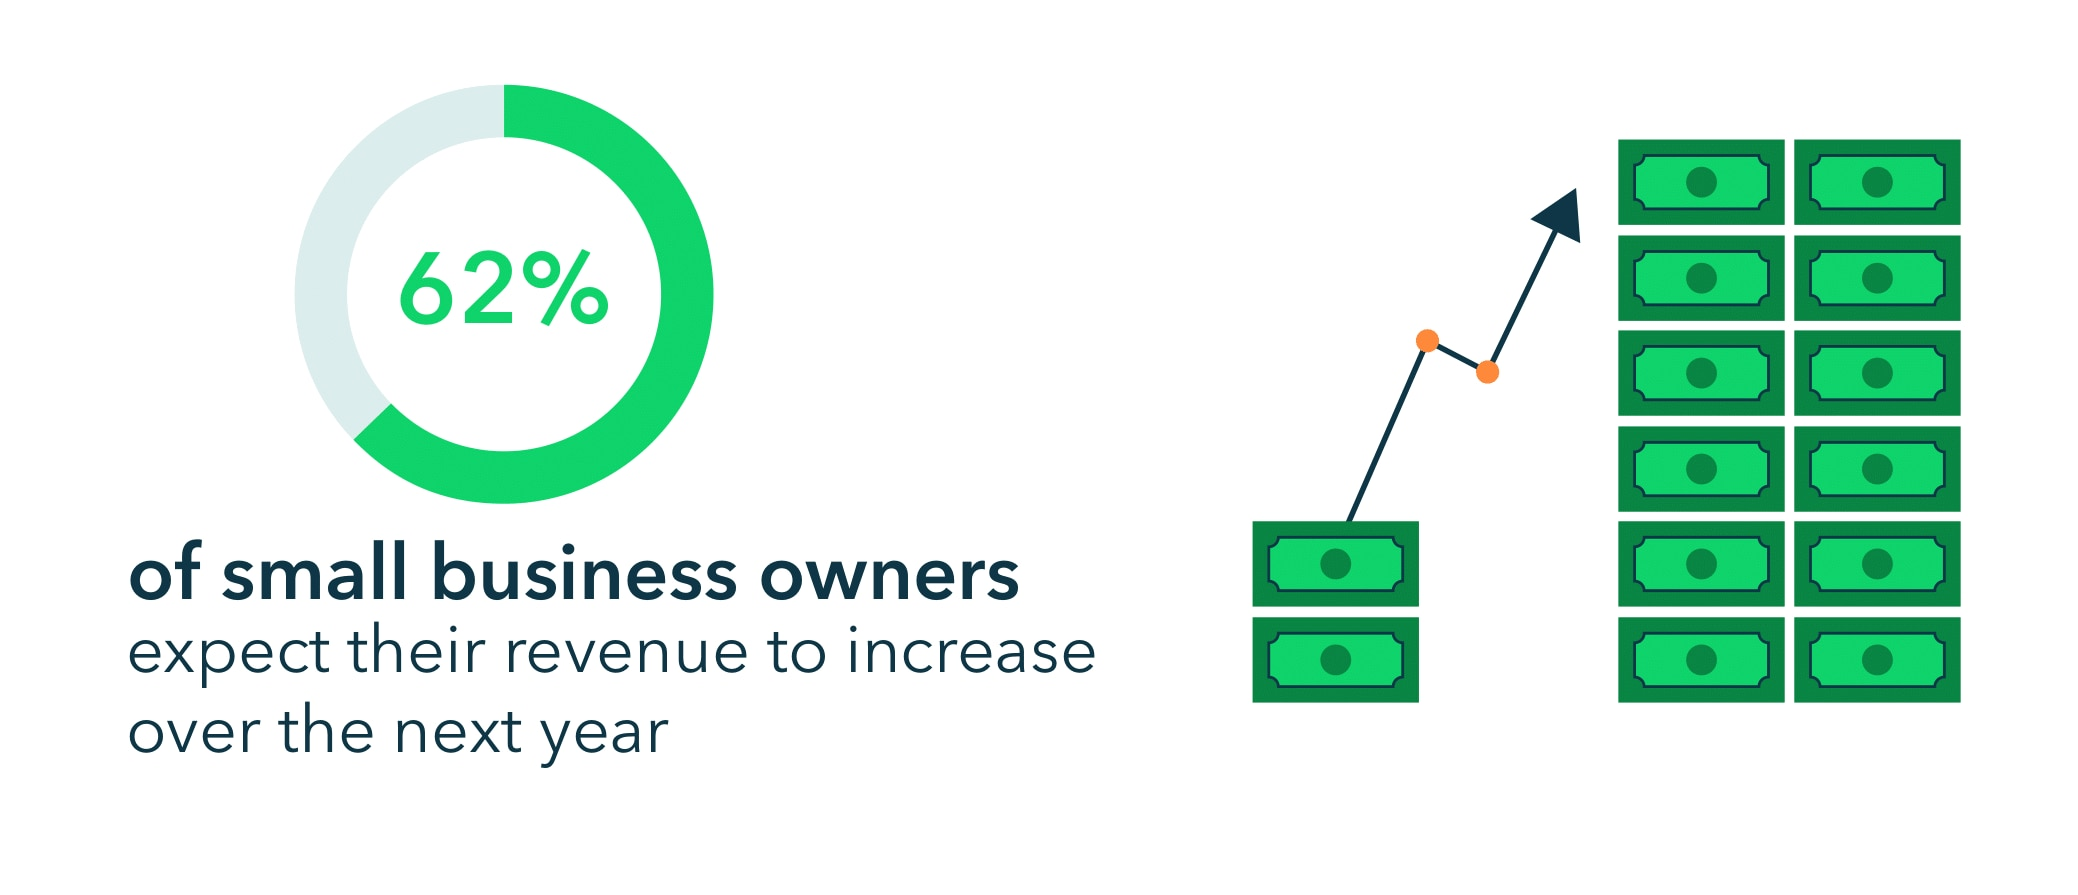 62% expect their revenue to increase over the next year.